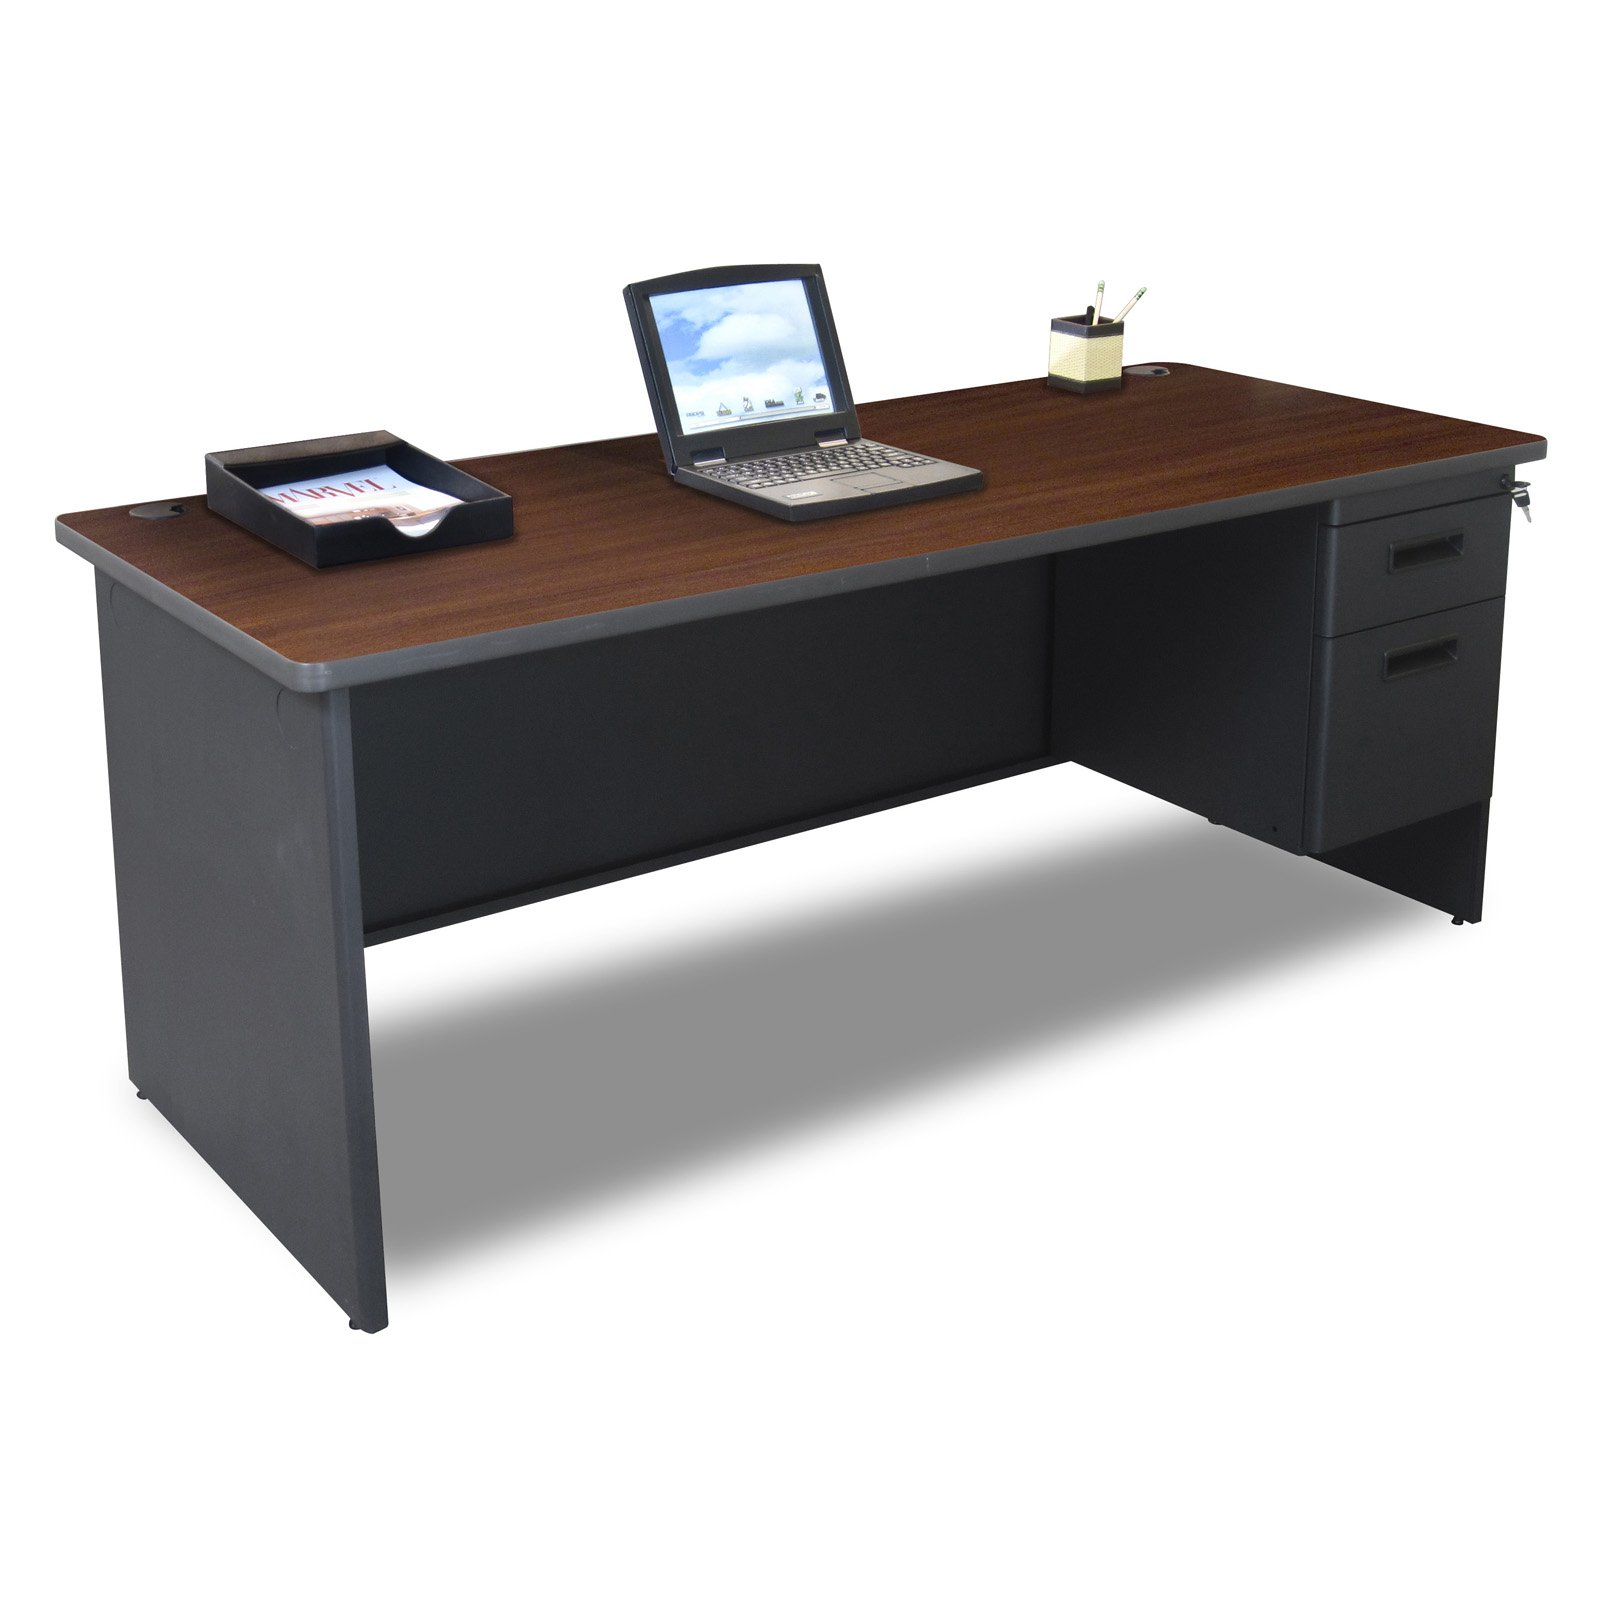 Pronto Single Pedestal Desk MVLPDR7230SPDTMA